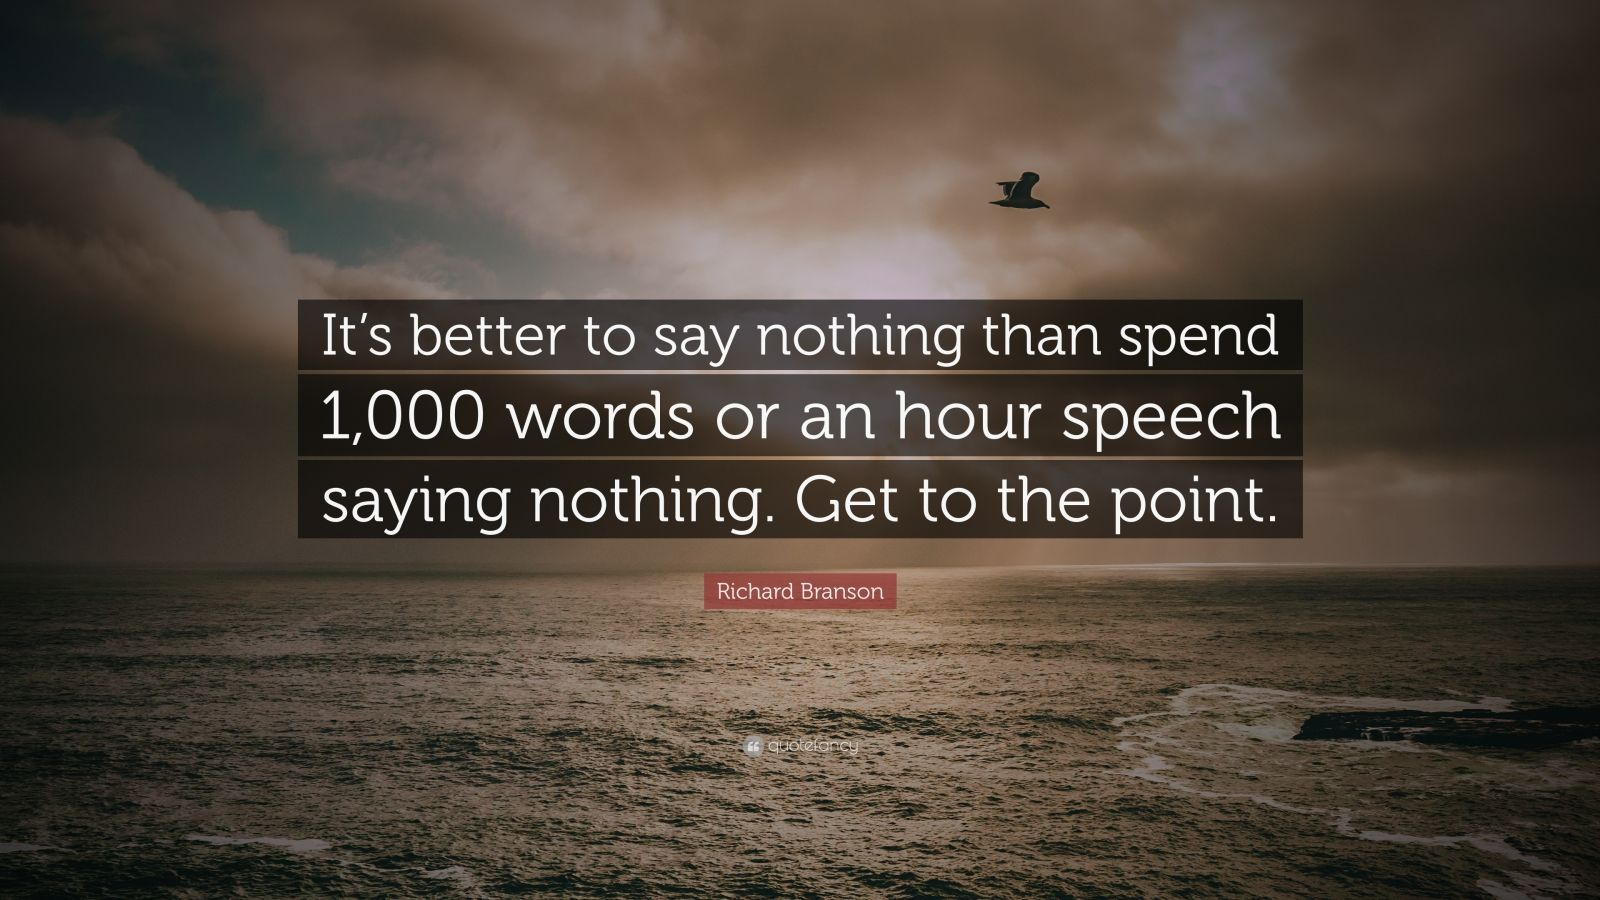 """Richard Branson Quote: """"It's better to say nothing than spend 1,000 words or an hour speech saying nothing. Get to the point."""""""